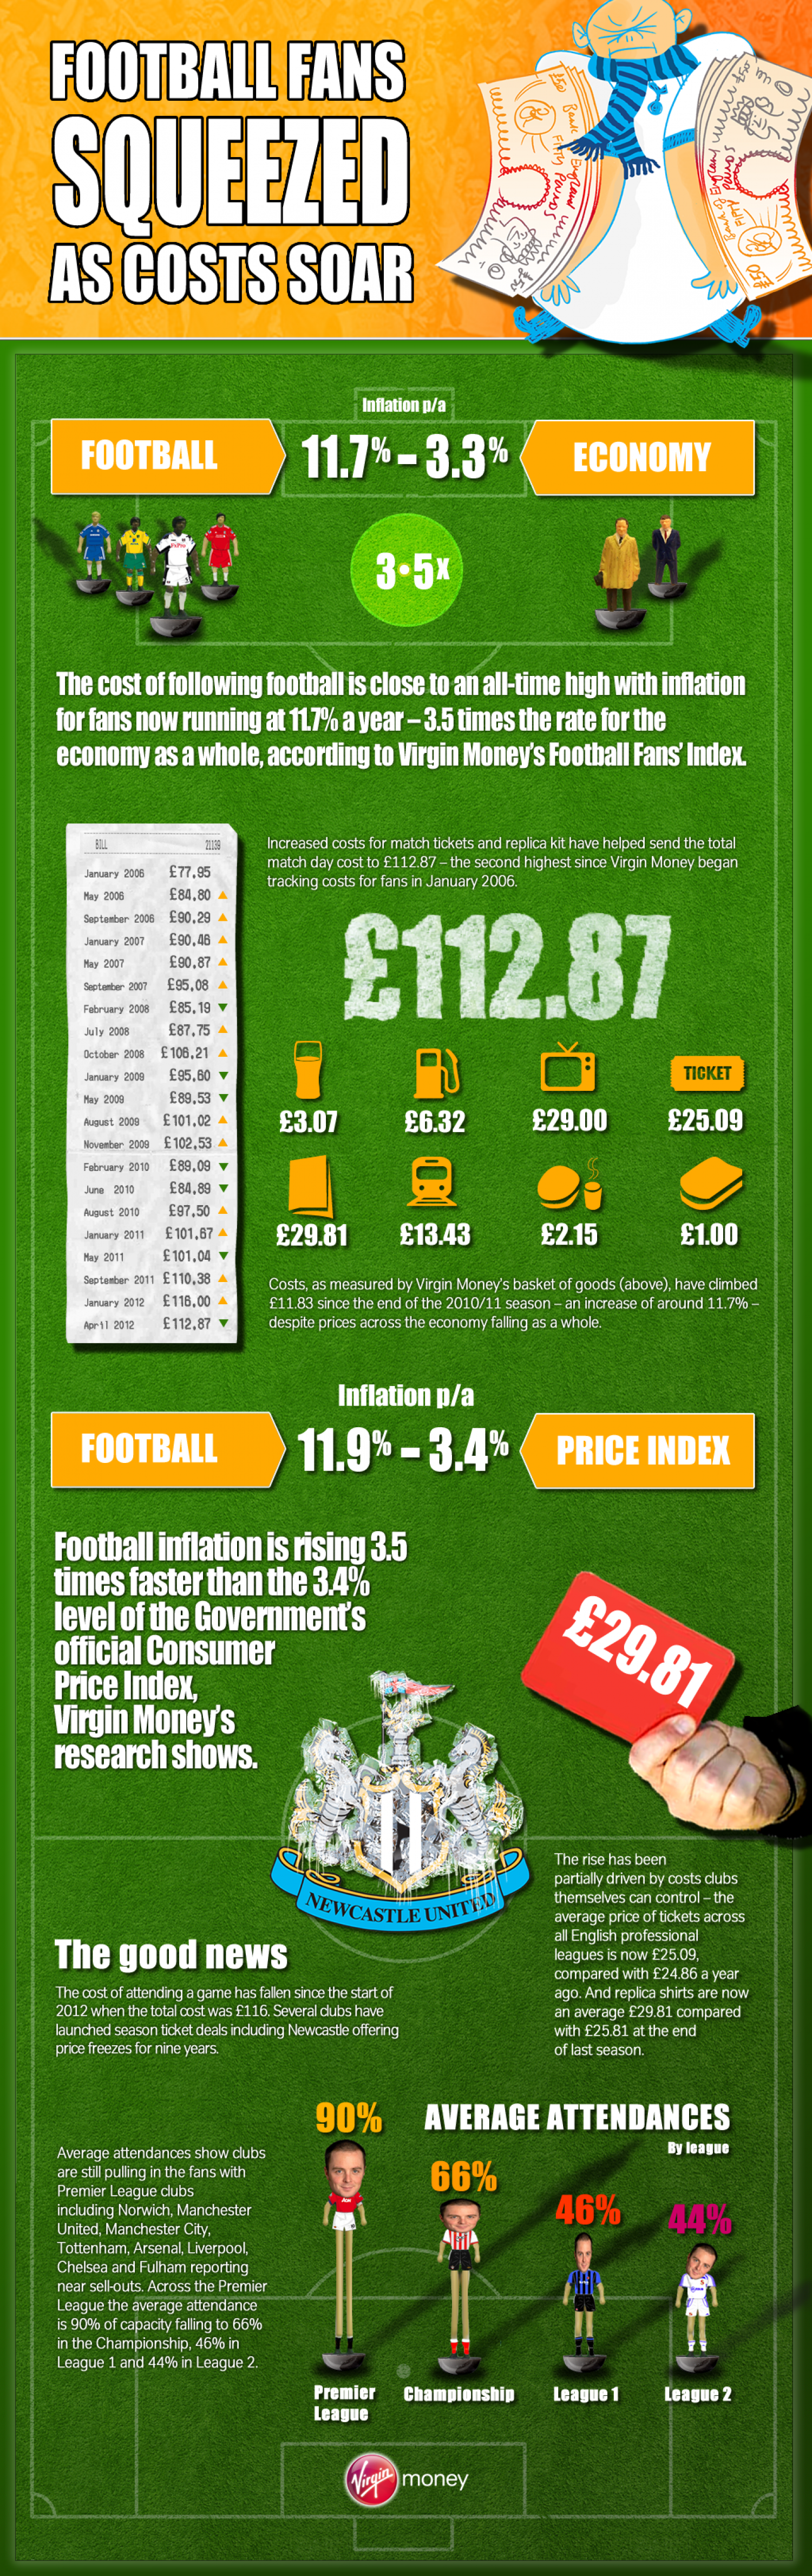 Football fans squeezed as costs soar Infographic